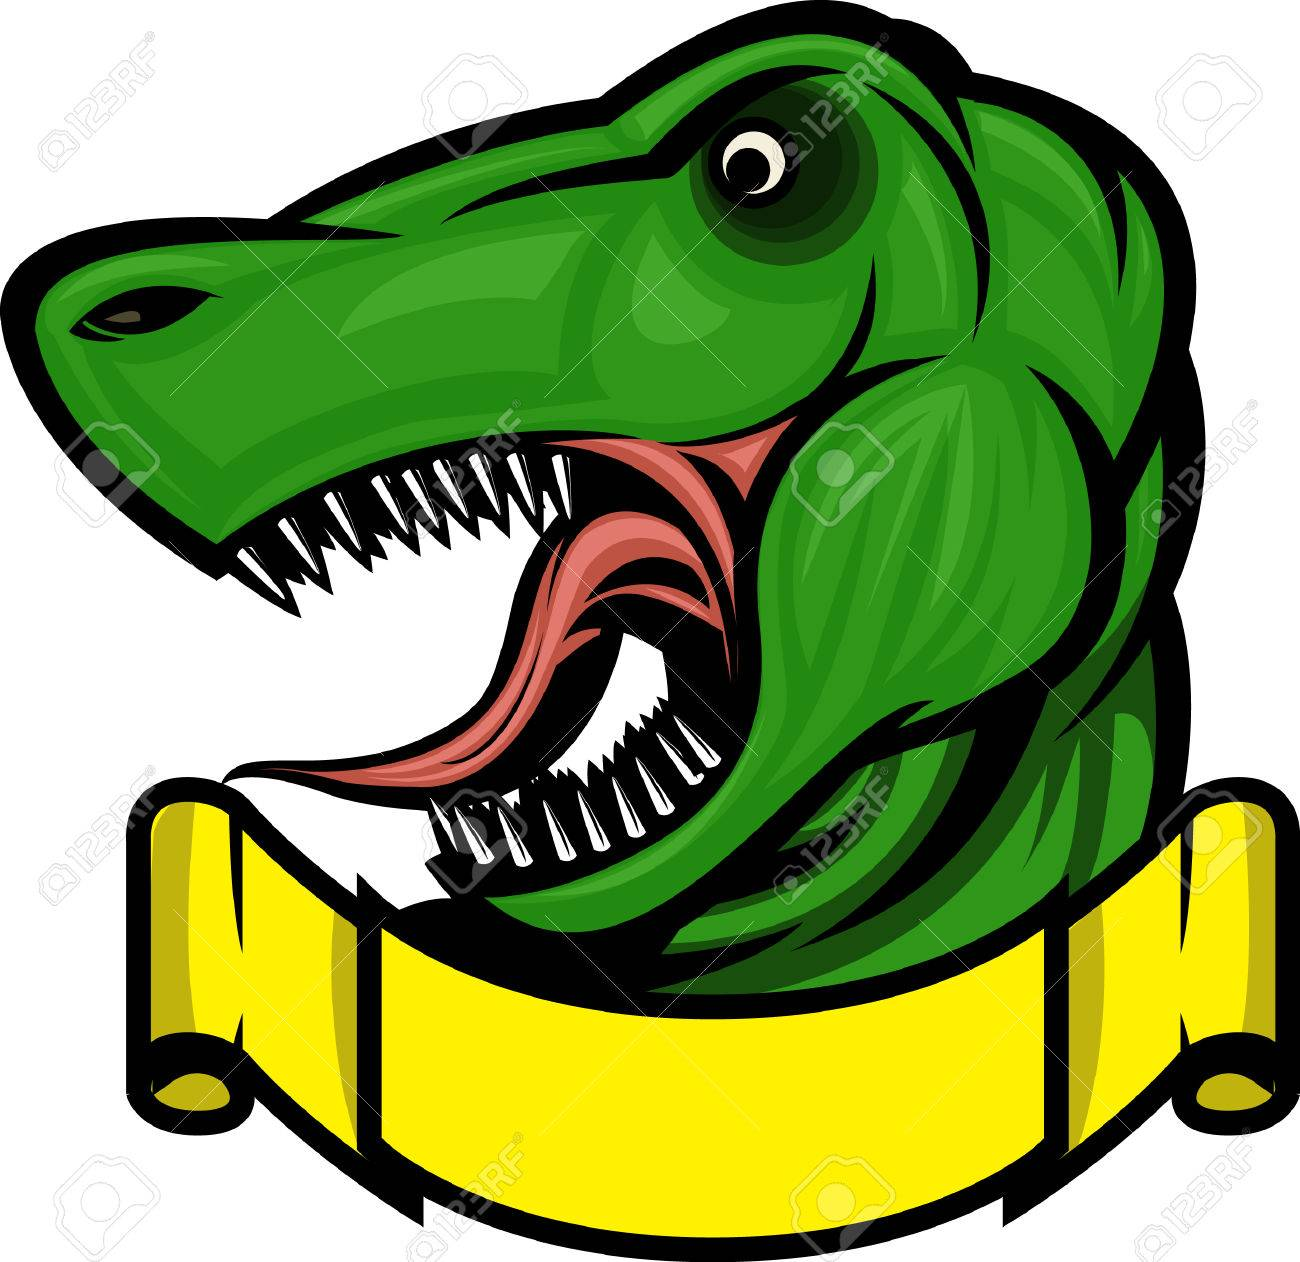 Roaring T-rex mascot! Separated into layers for easy editing. Stock Vector - 7673896